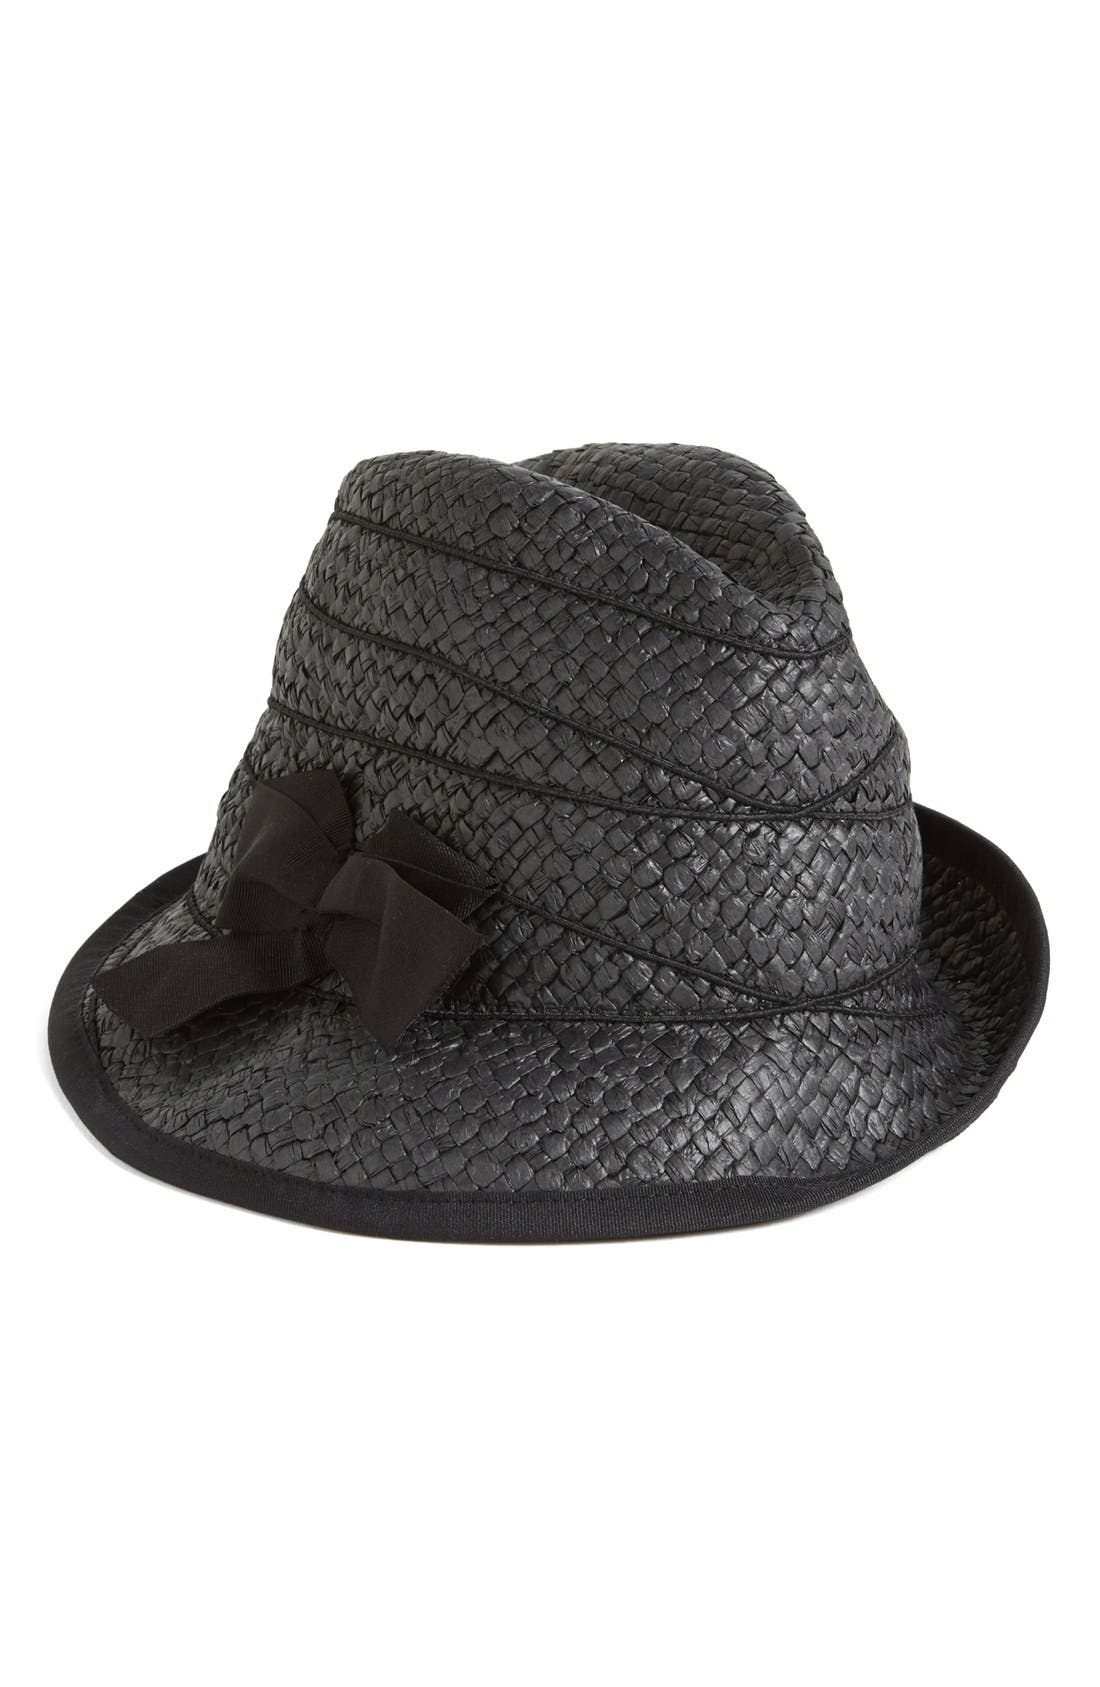 Alternate Image 1 Selected - August Hat Bow Fedora